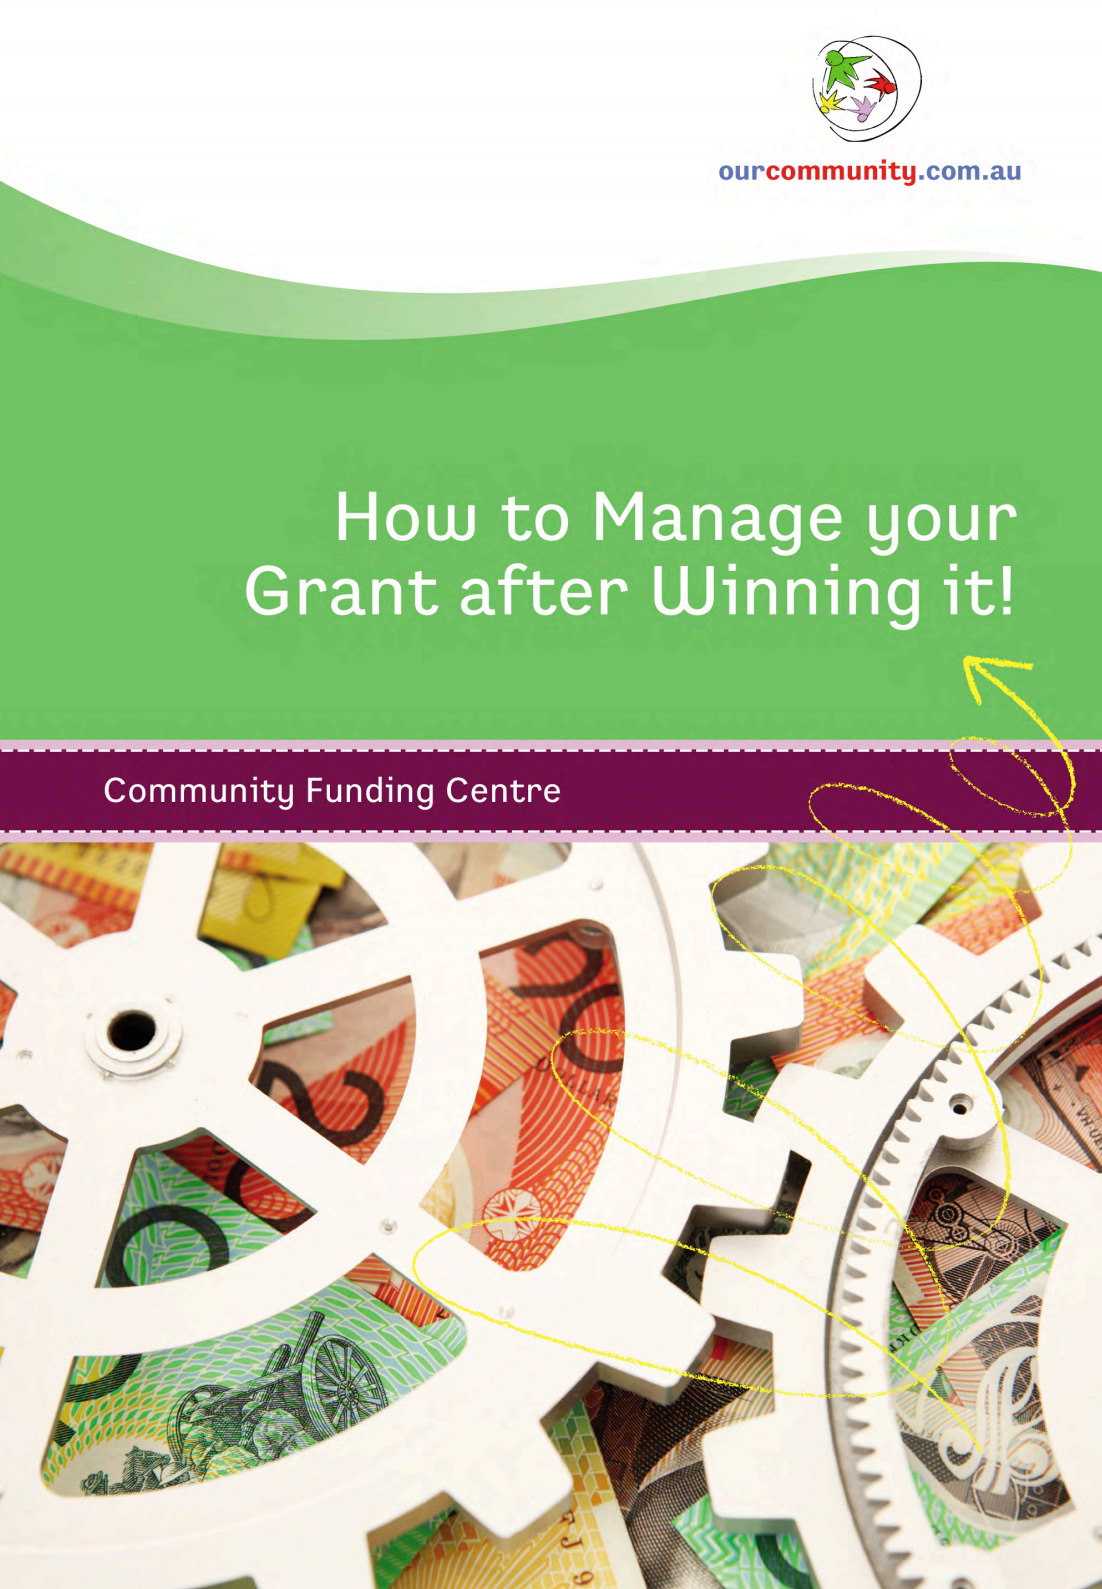 How to Manage your Grant after Winning it!